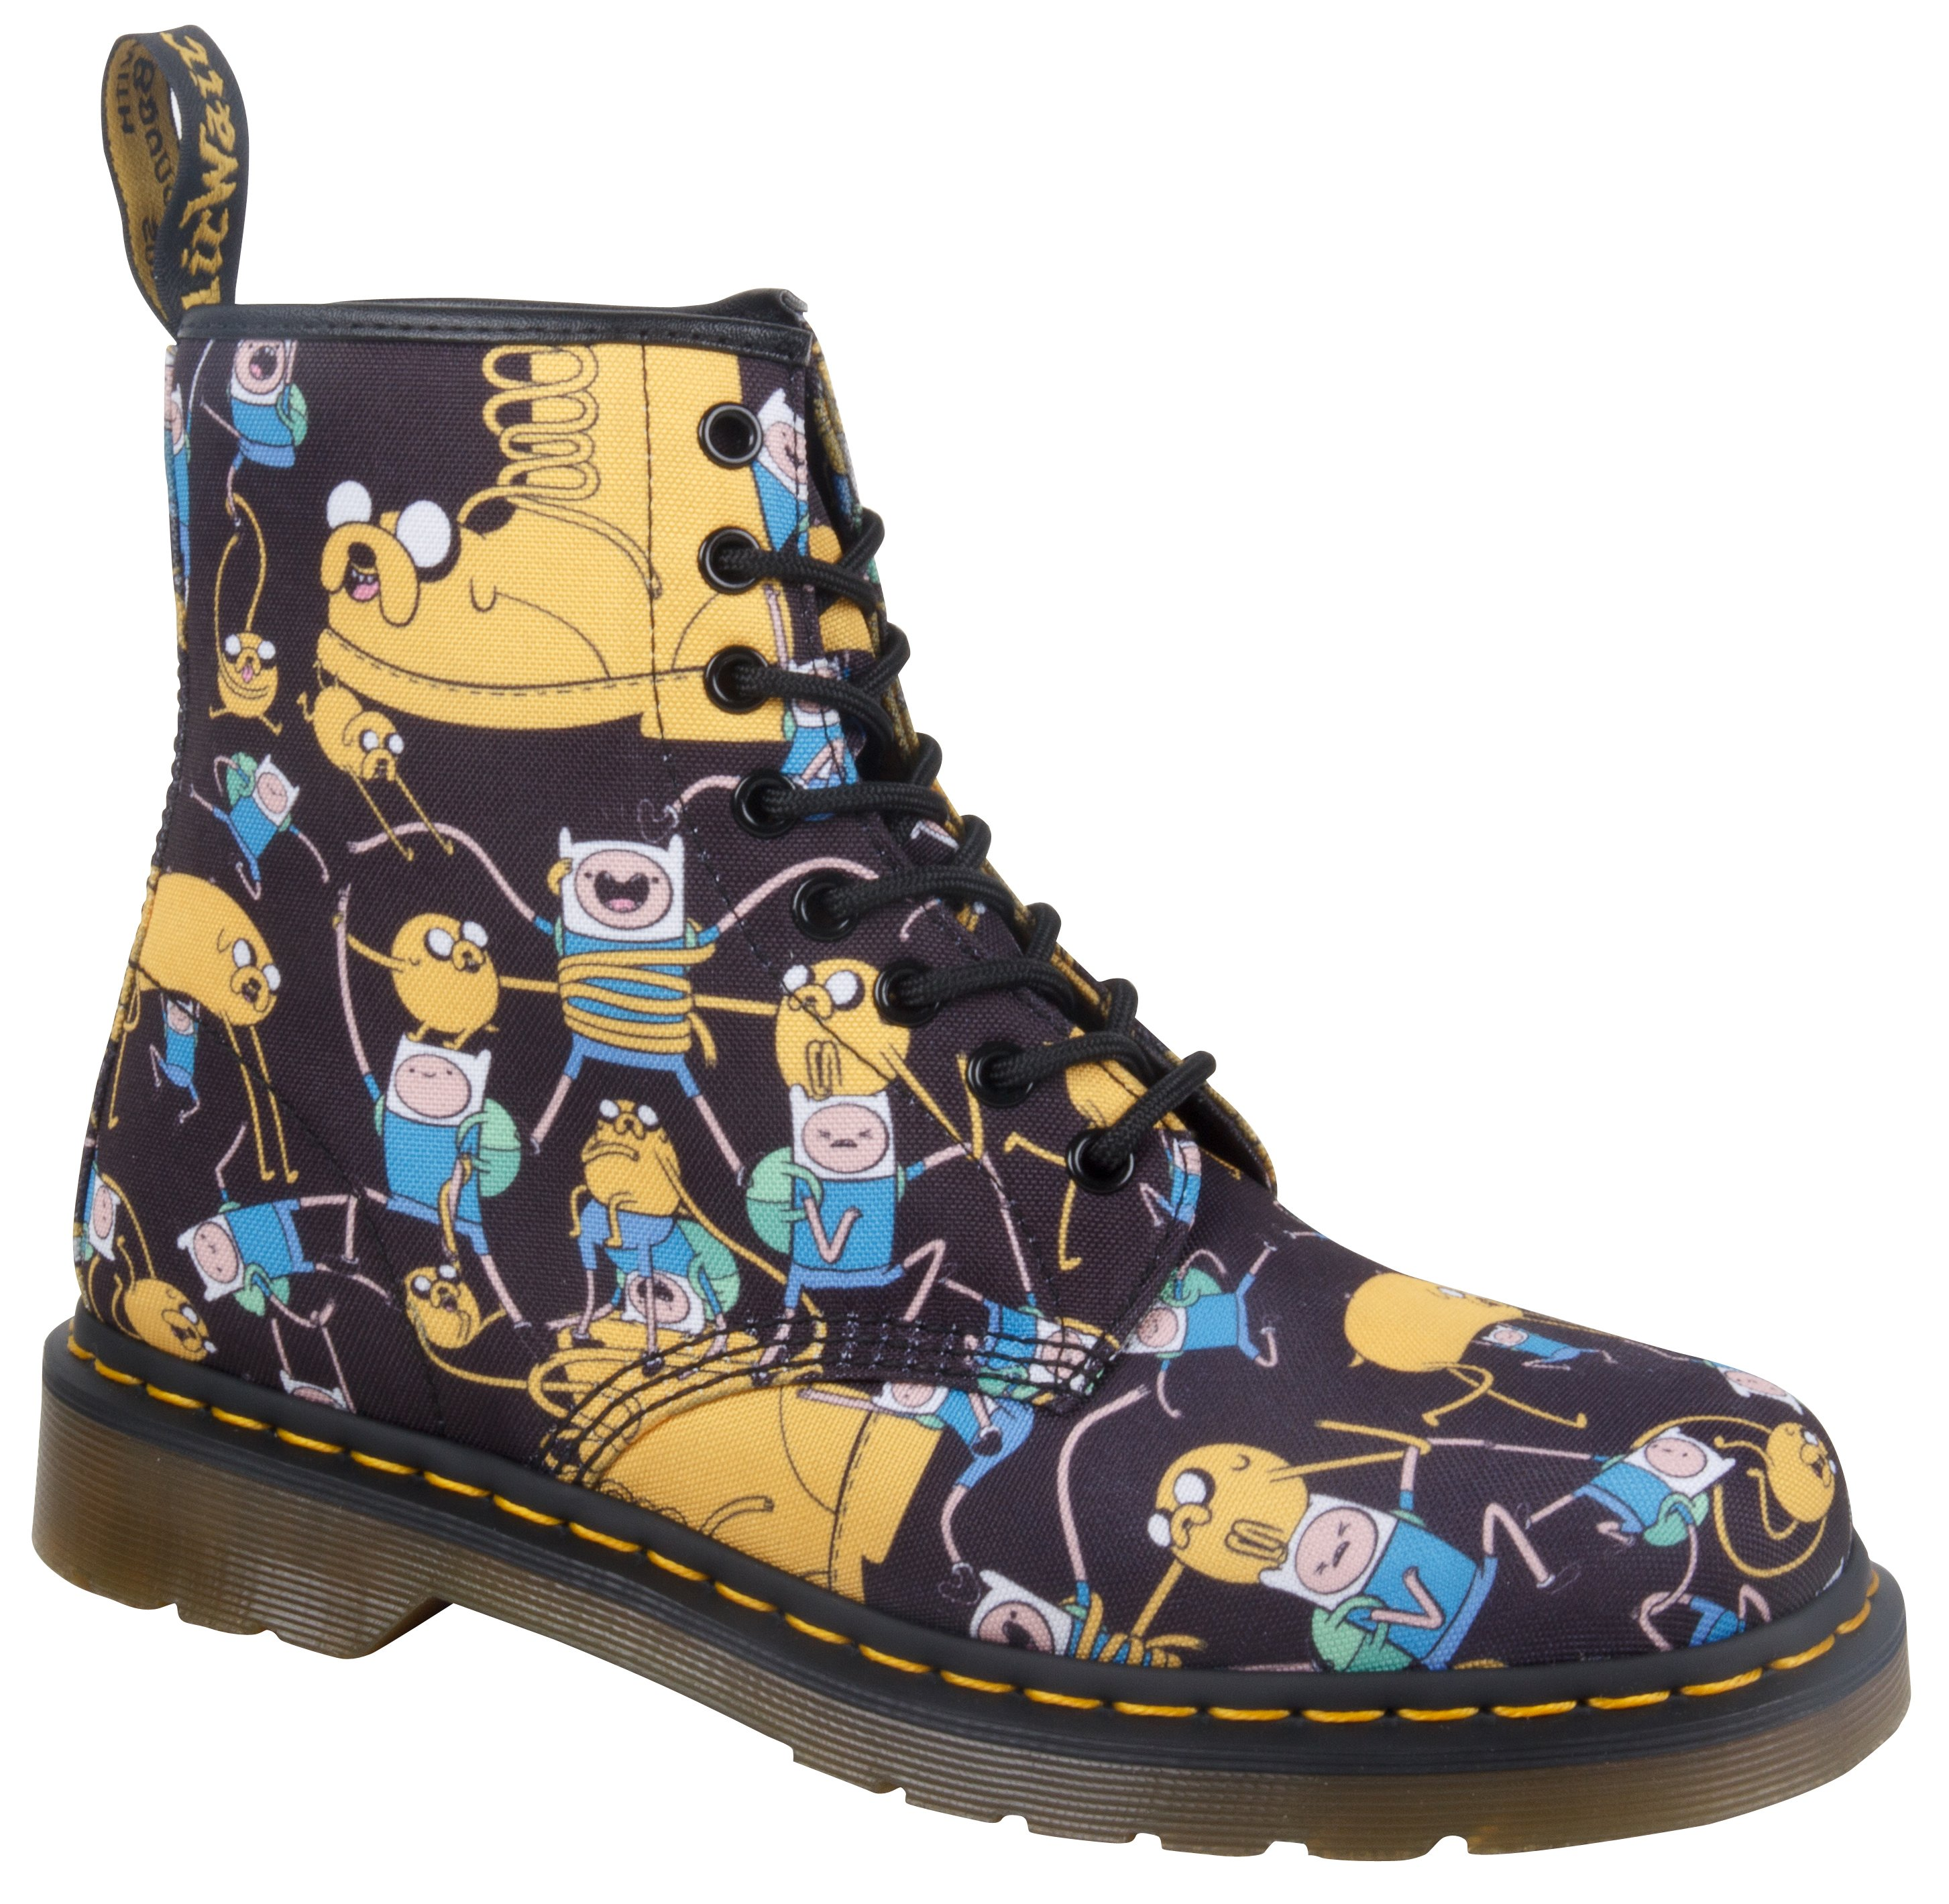 14318101_ADULTS_ADVENTURE TIME_CASTEL_8 EYE BOOT_MULTI CHARACTER T CANVAS